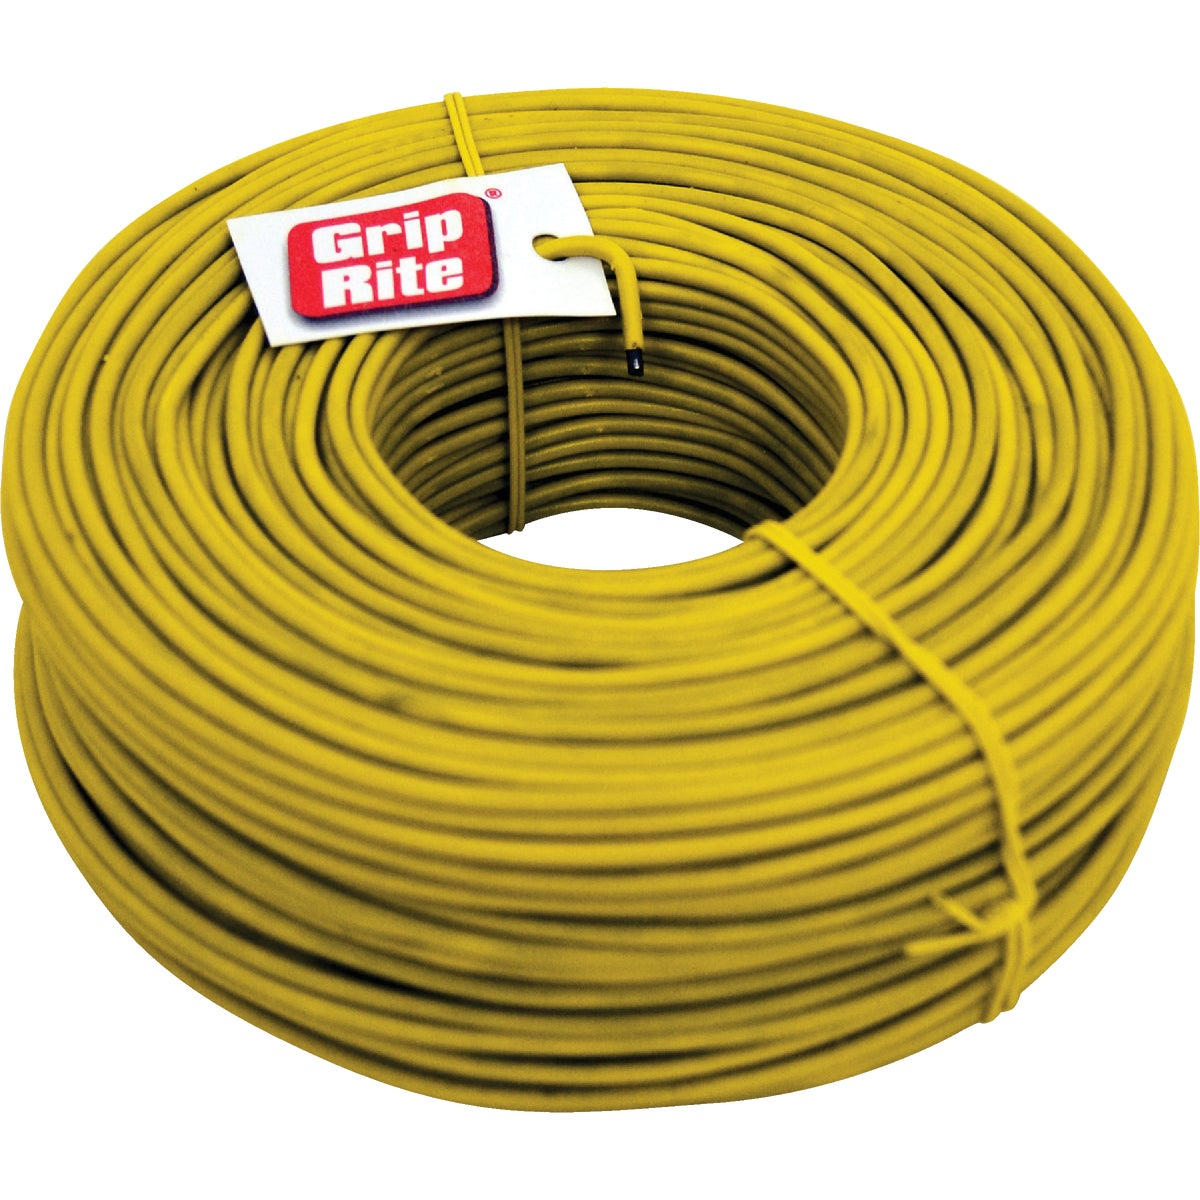 3LB 16GA PVC CT TIE WIRE - TWPV161231 by Primesource